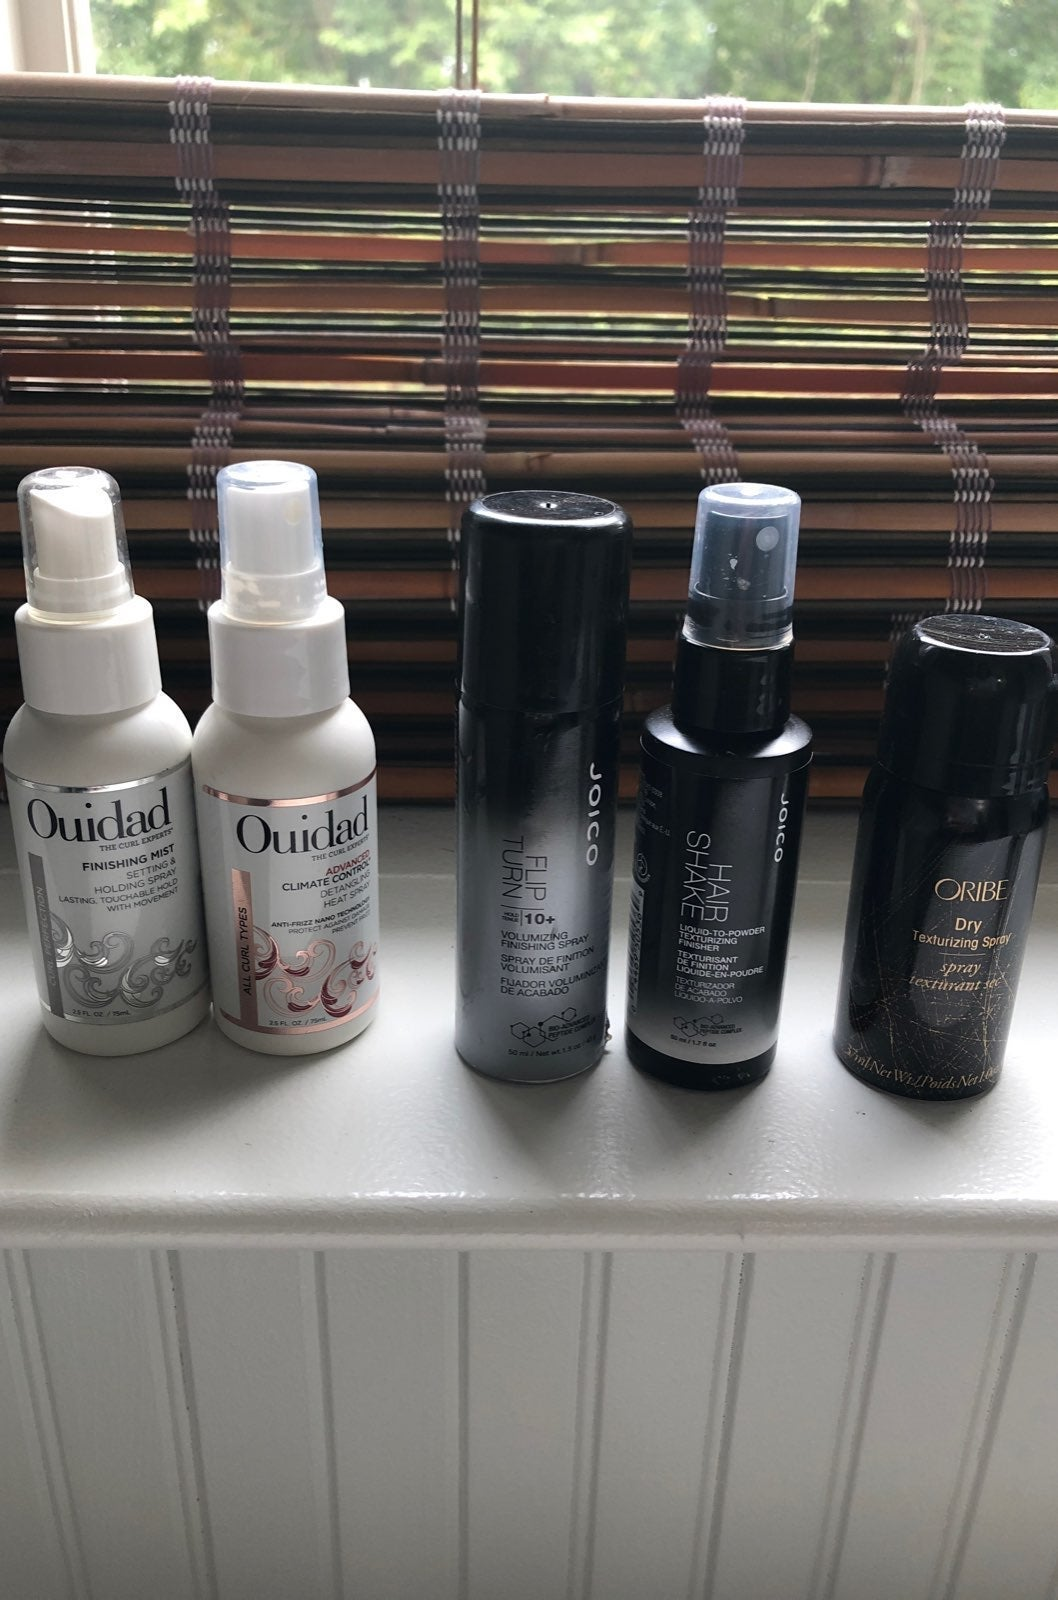 5 Travel Size Ouidad with Hair Shake and